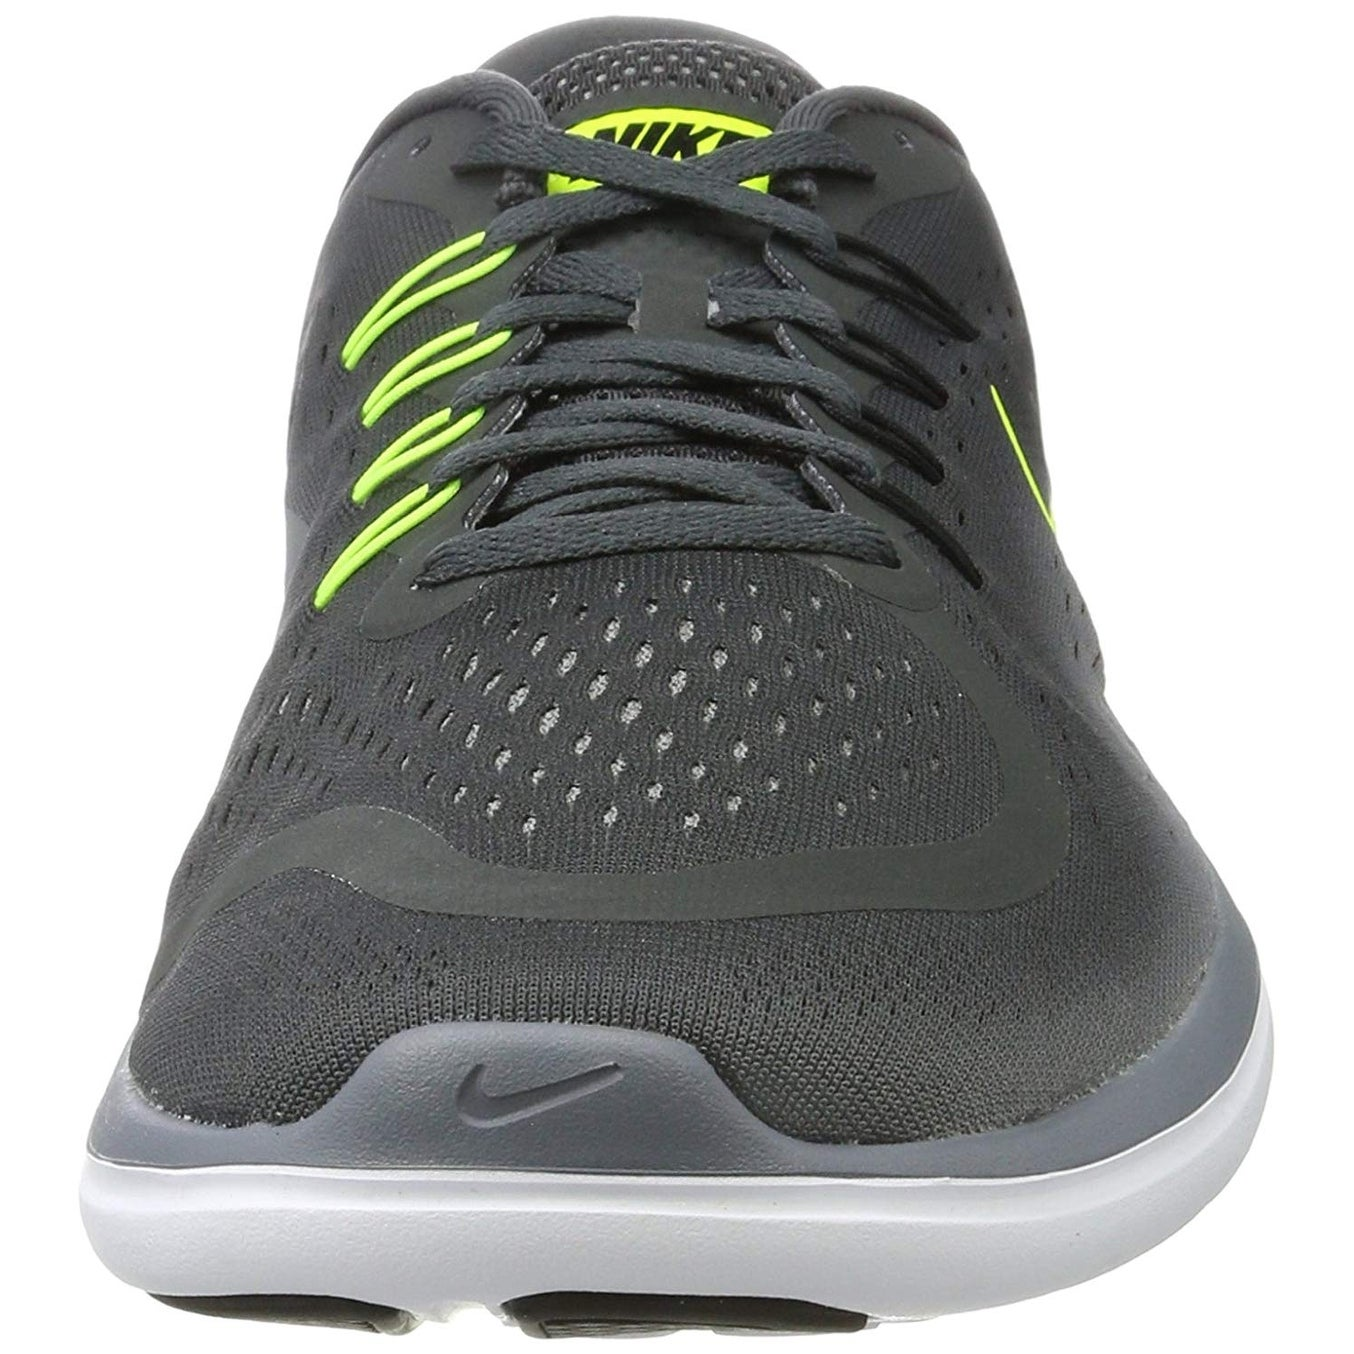 7db15a04fddb5 Shop Nike Womens Nike flex 2017 RN Fabric Low Top Lace Up Running Sneaker -  Free Shipping Today - Overstock - 22413187